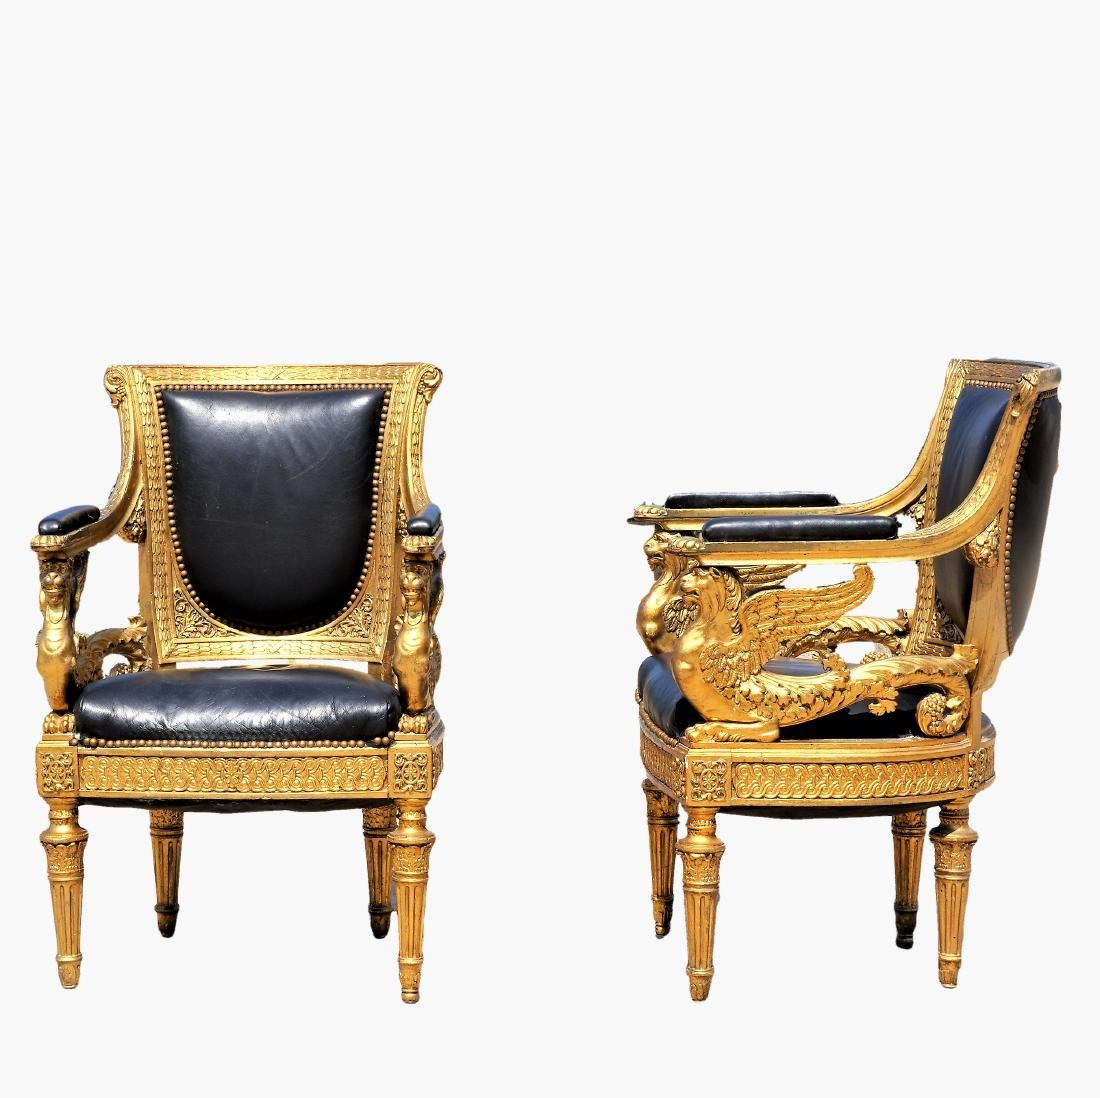 18th Century Russian Imperial Gilded Arm Chairs